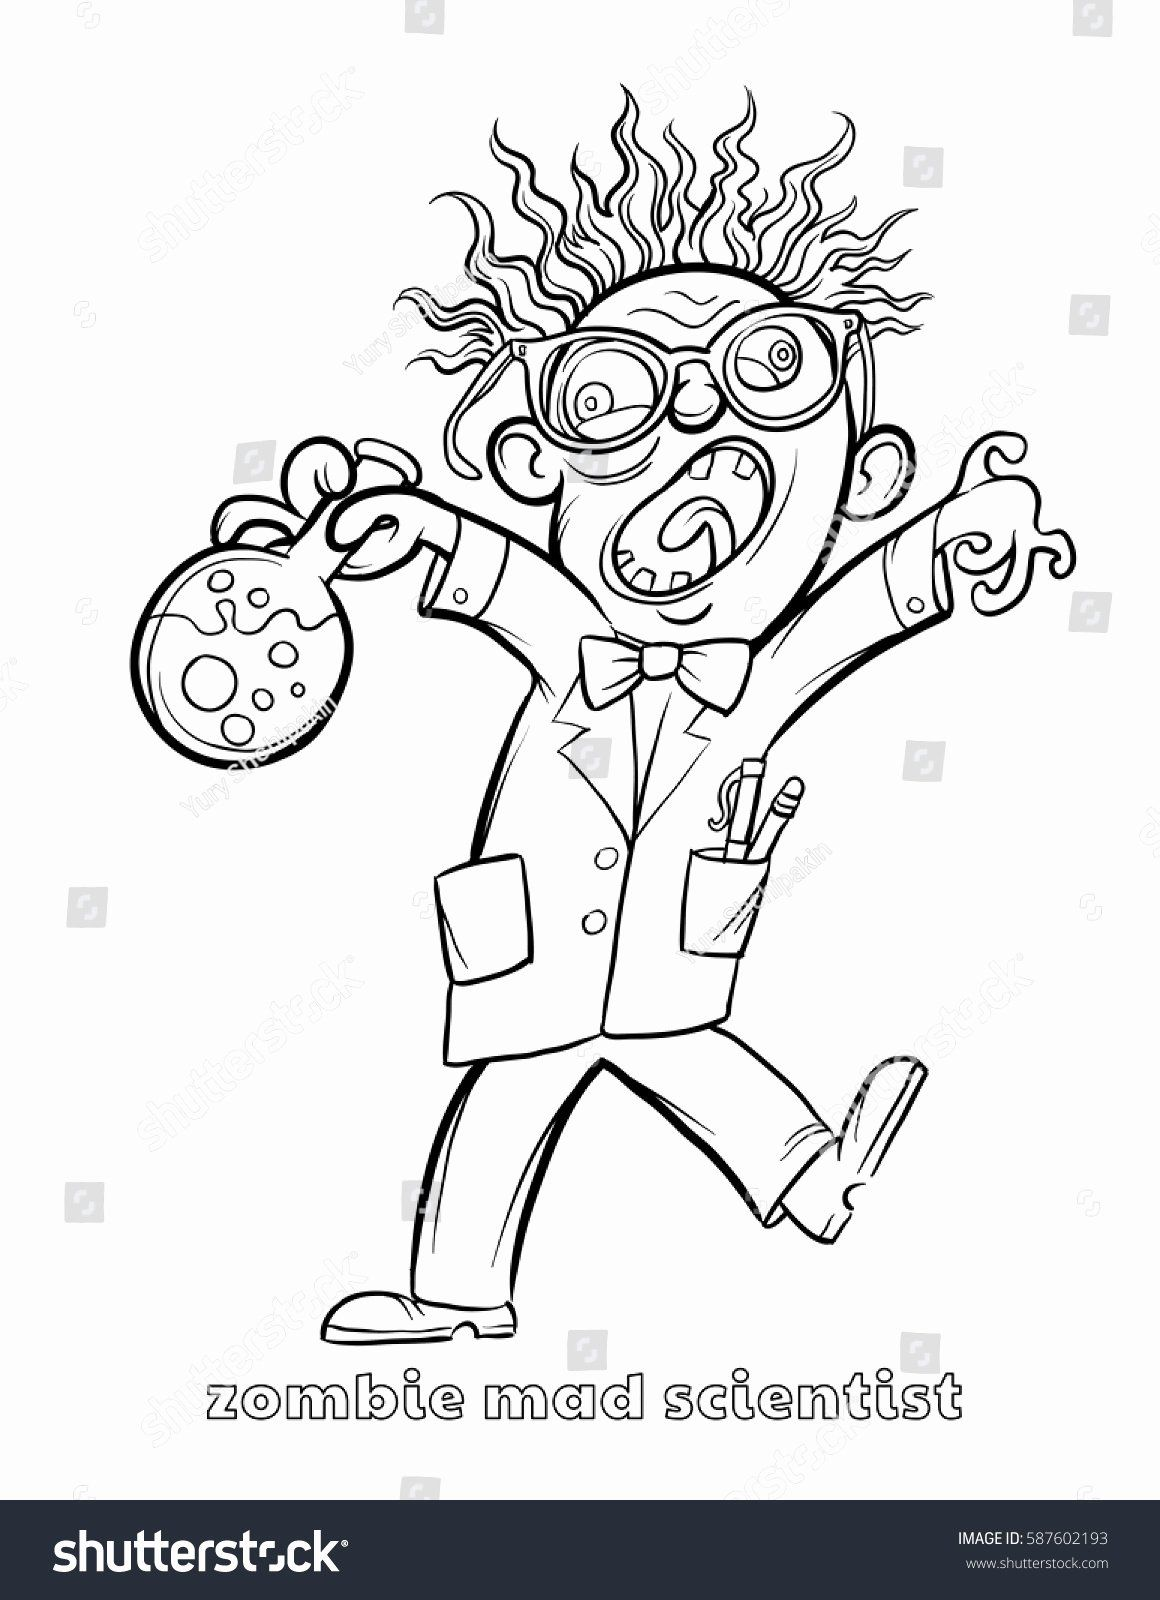 Mad Science Coloring Page New Funny Zombie Mad Scientist Coloring Page Unicorn Coloring Pages Shape Coloring Pages Coloring Pages